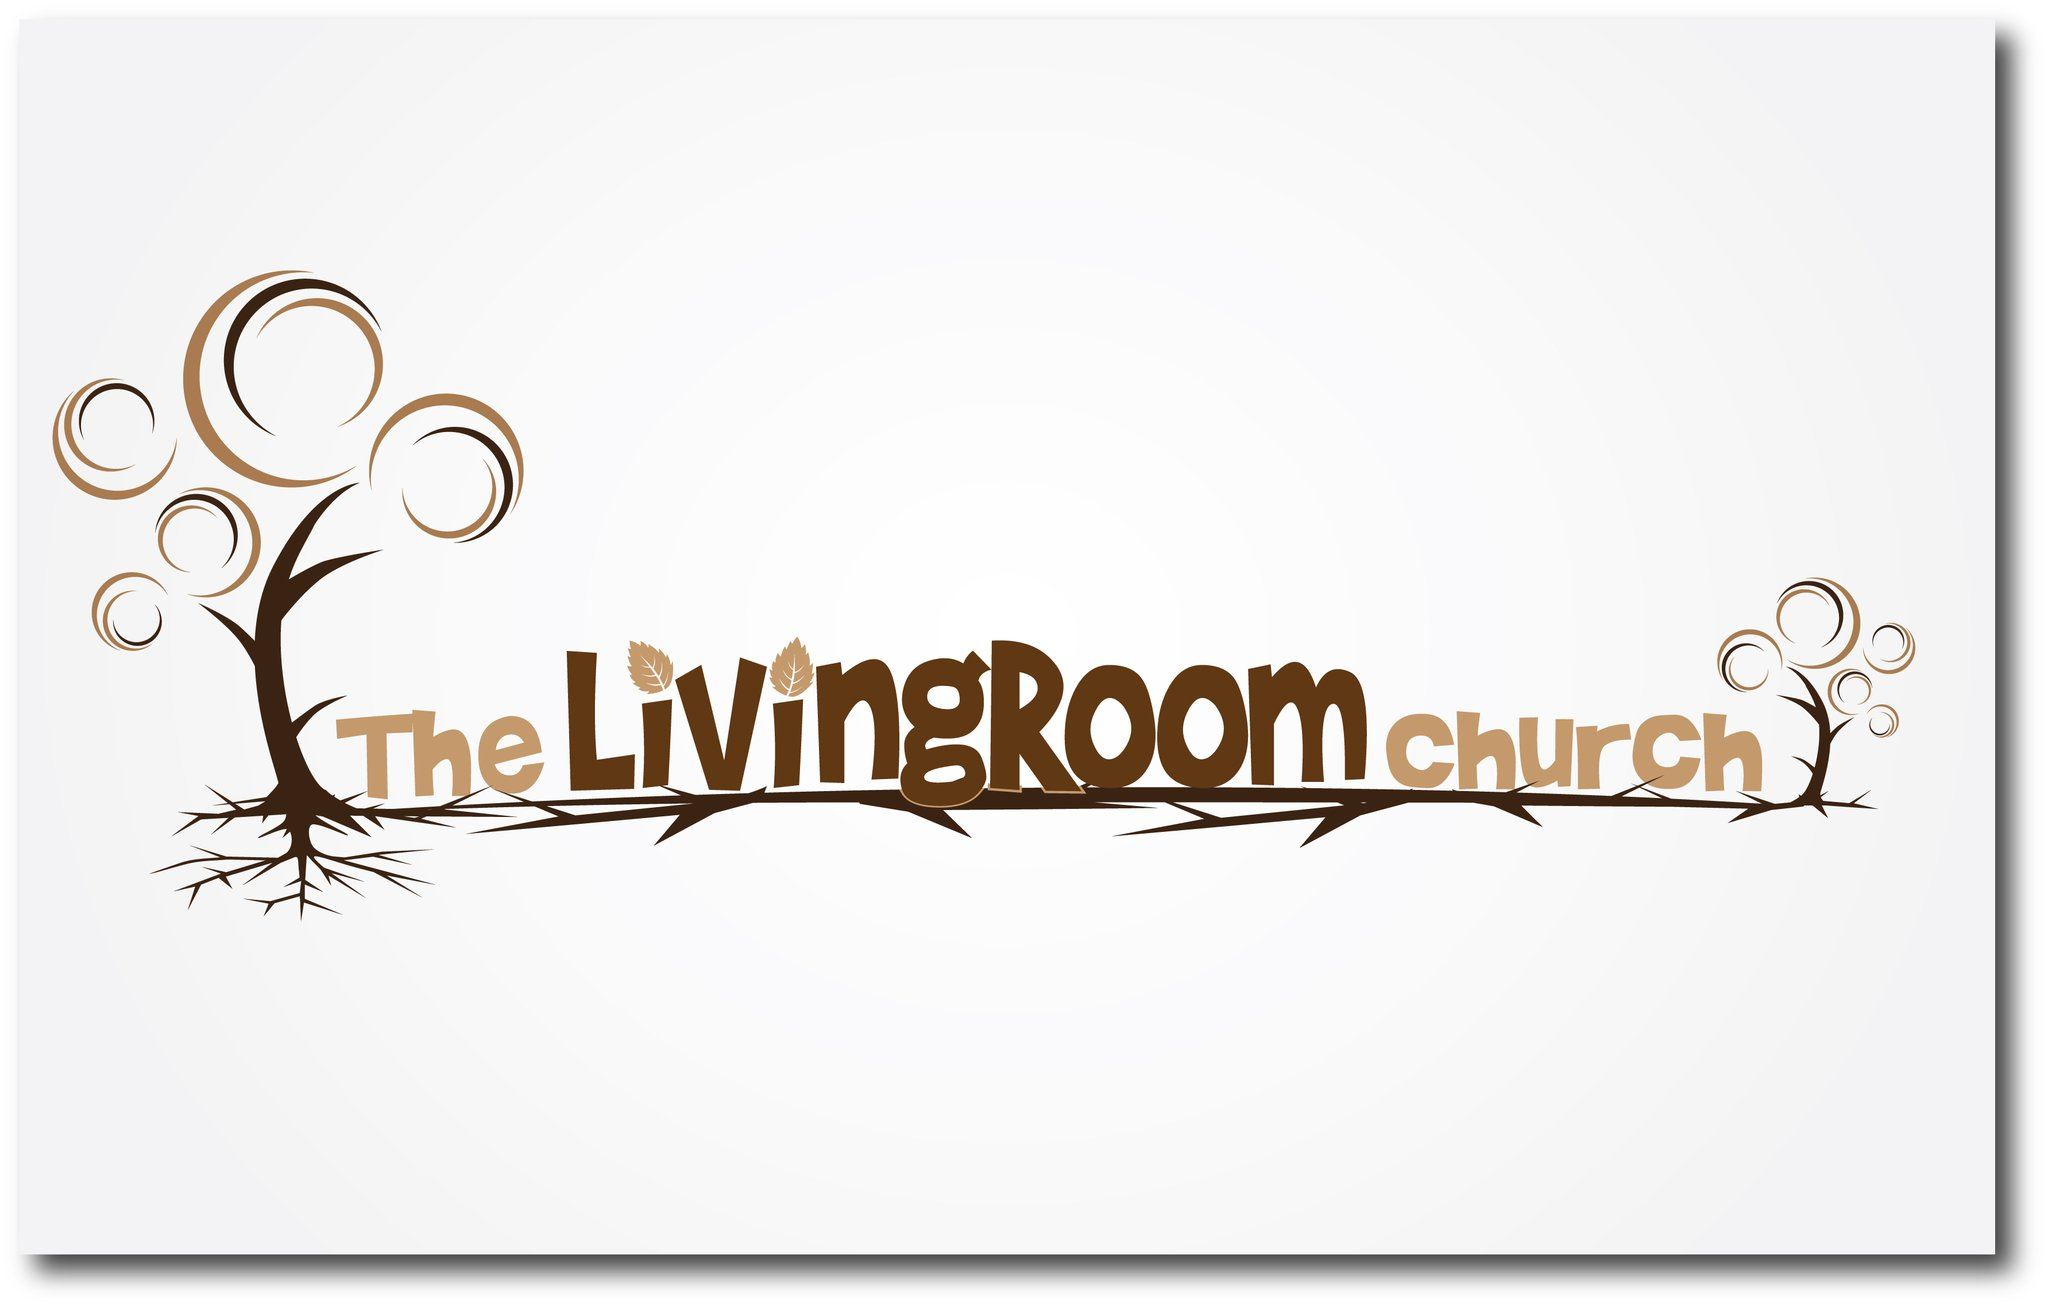 Living Room Church Impressive Church Logo Design The Livingroom Church  Foi Designs Inspiration